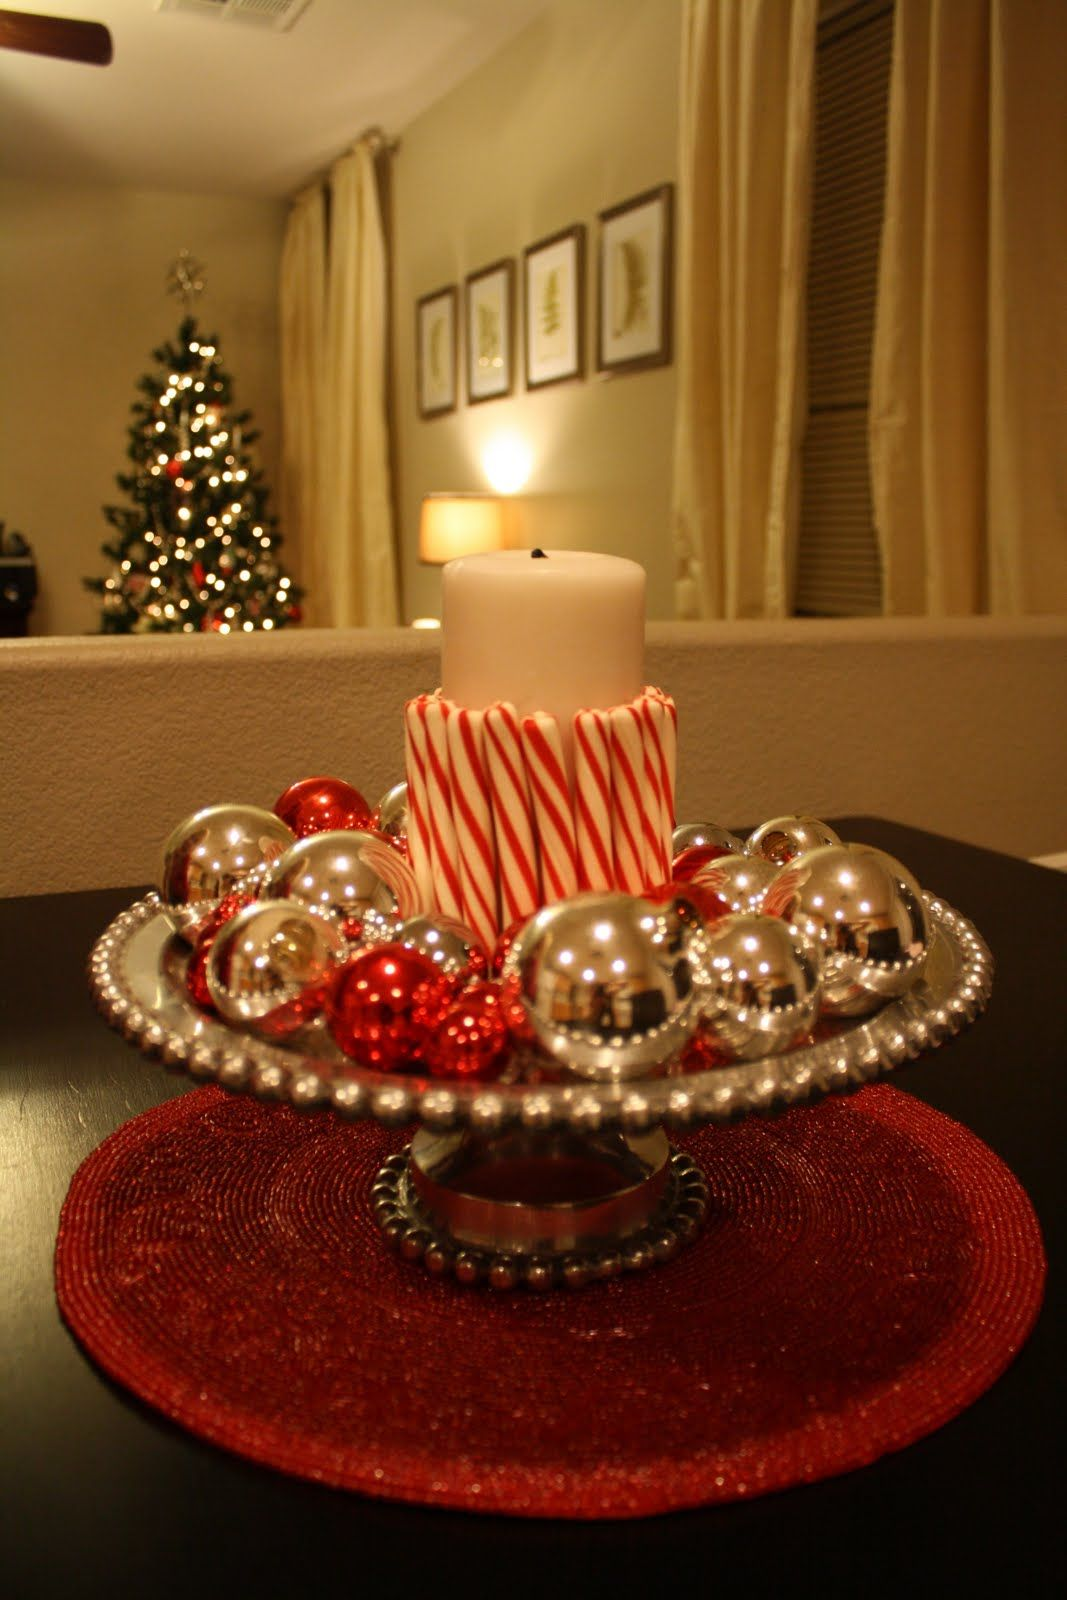 Candy Cane Candle Homemade Christmas Table Decorations Christmas Table Decorations Centerpiece Christmas Centerpieces